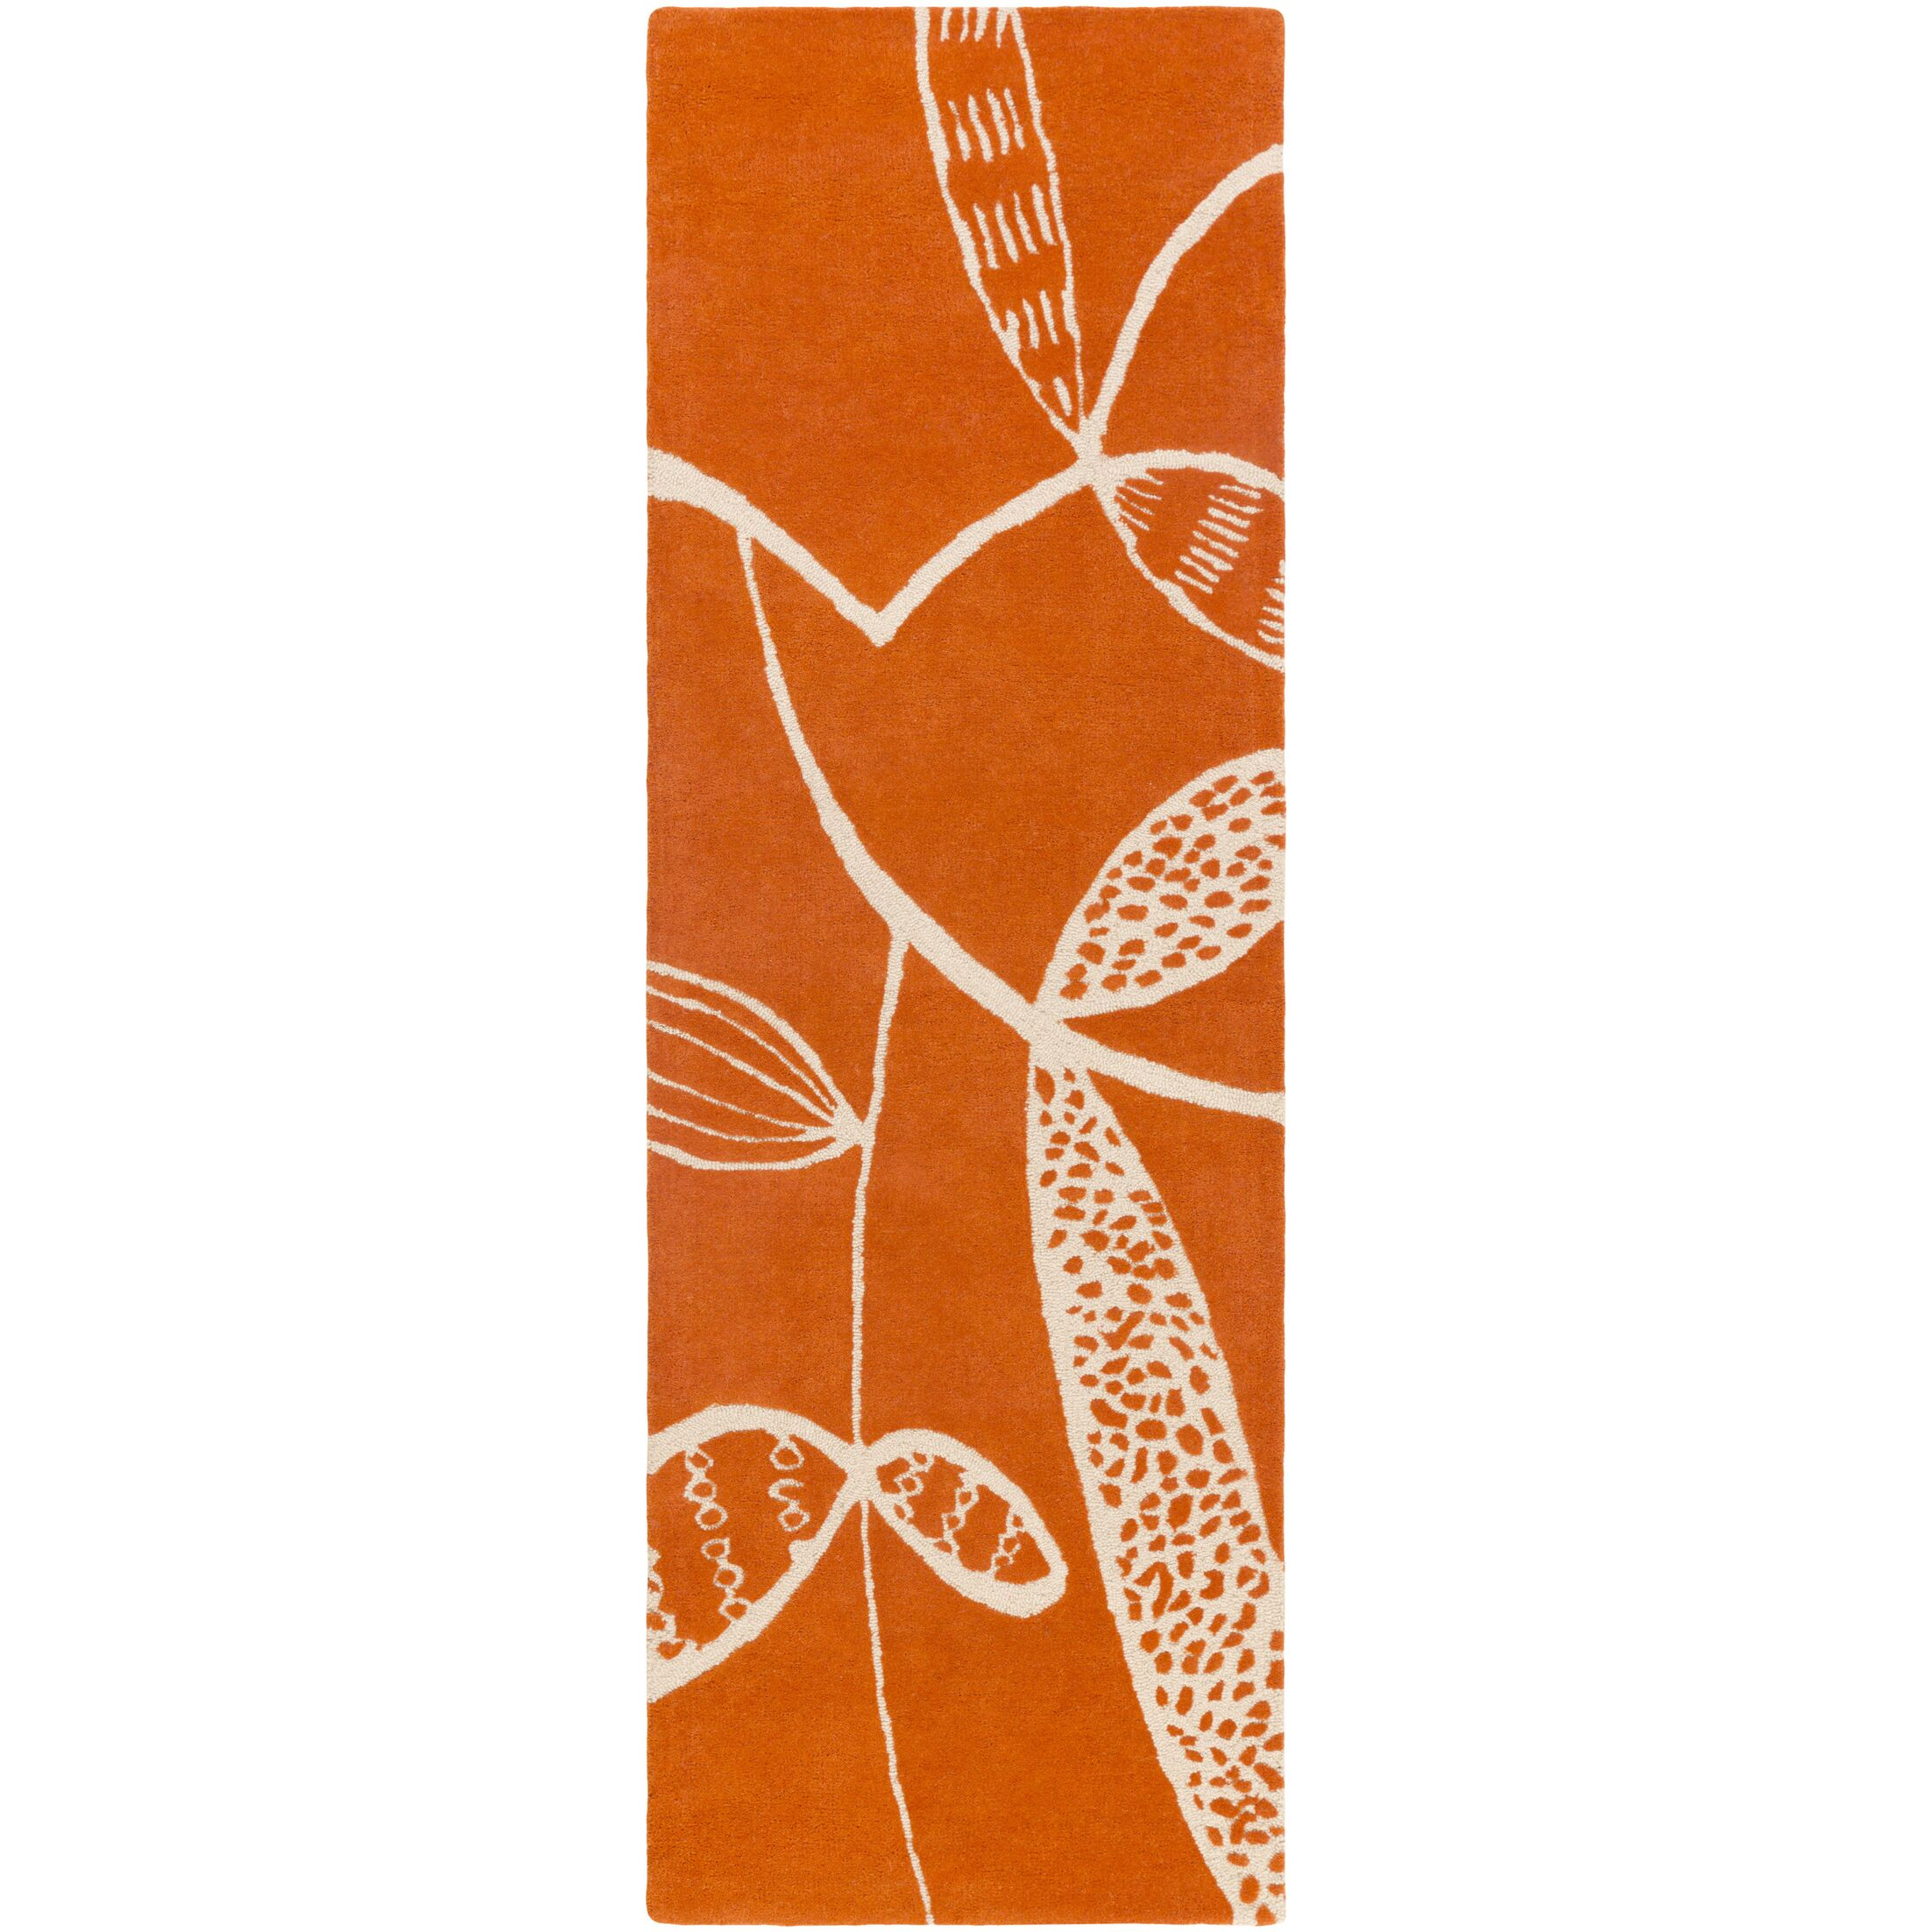 Decorativa Hand-Tufted Orange/Neutral Area Rug Rug Size: Runner 2'6